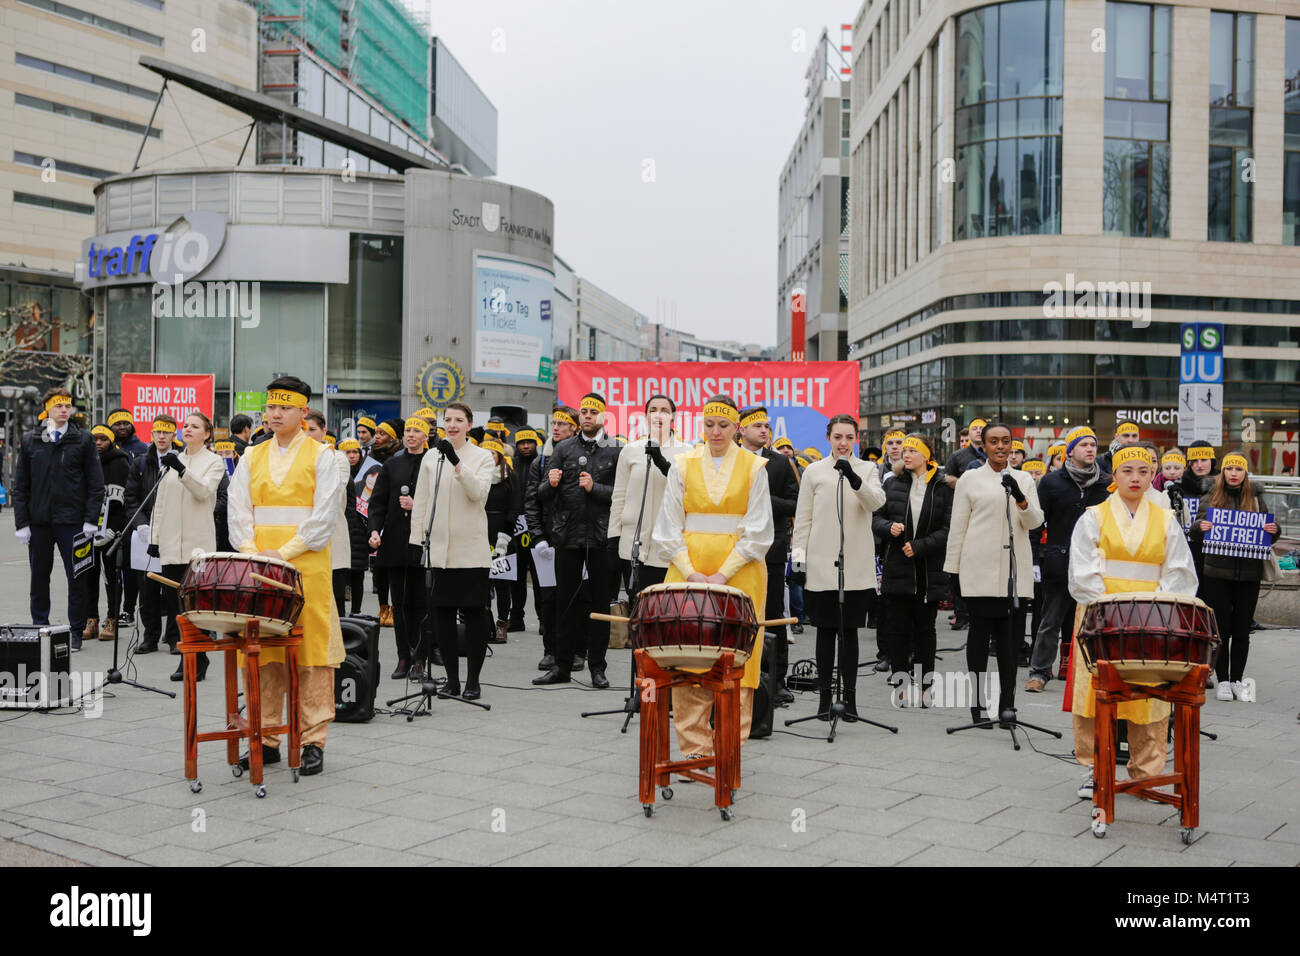 Frankfurt, Germany. 17th February 2018. Sympathisers of the Human Rights Association for Forced Conversion sing Stock Photo